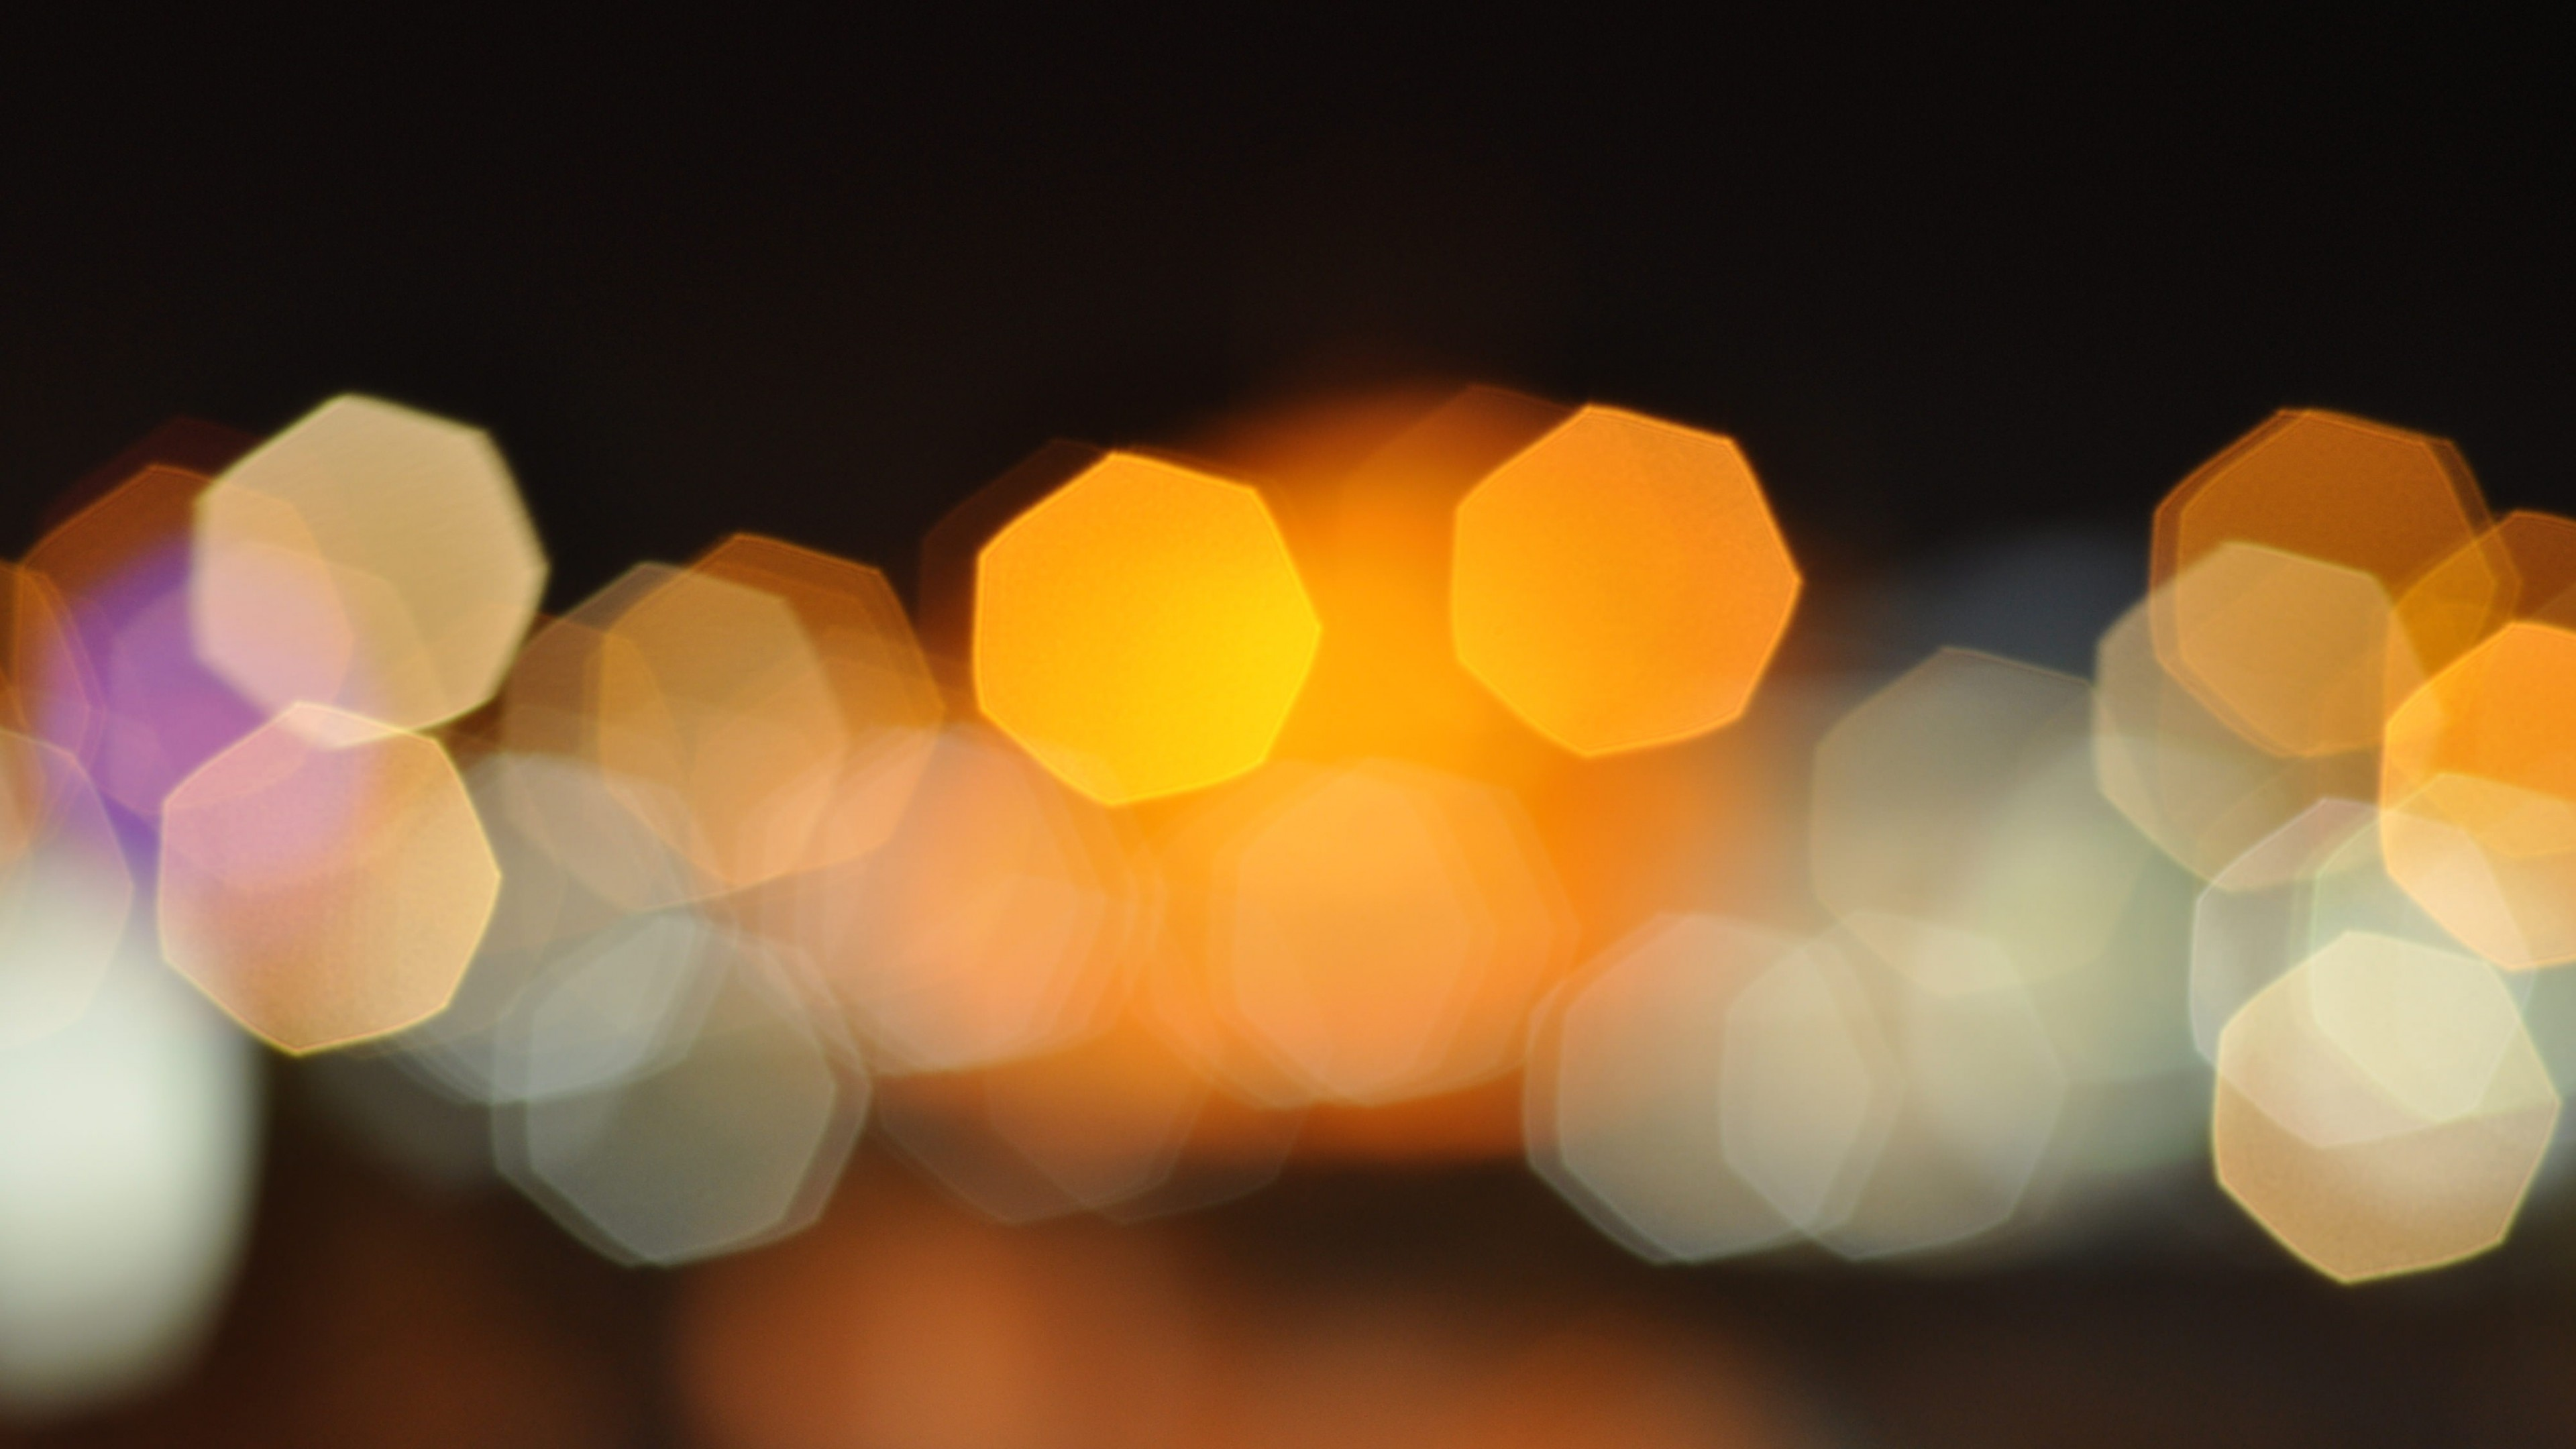 blurred wallpapers photos and desktop backgrounds up to